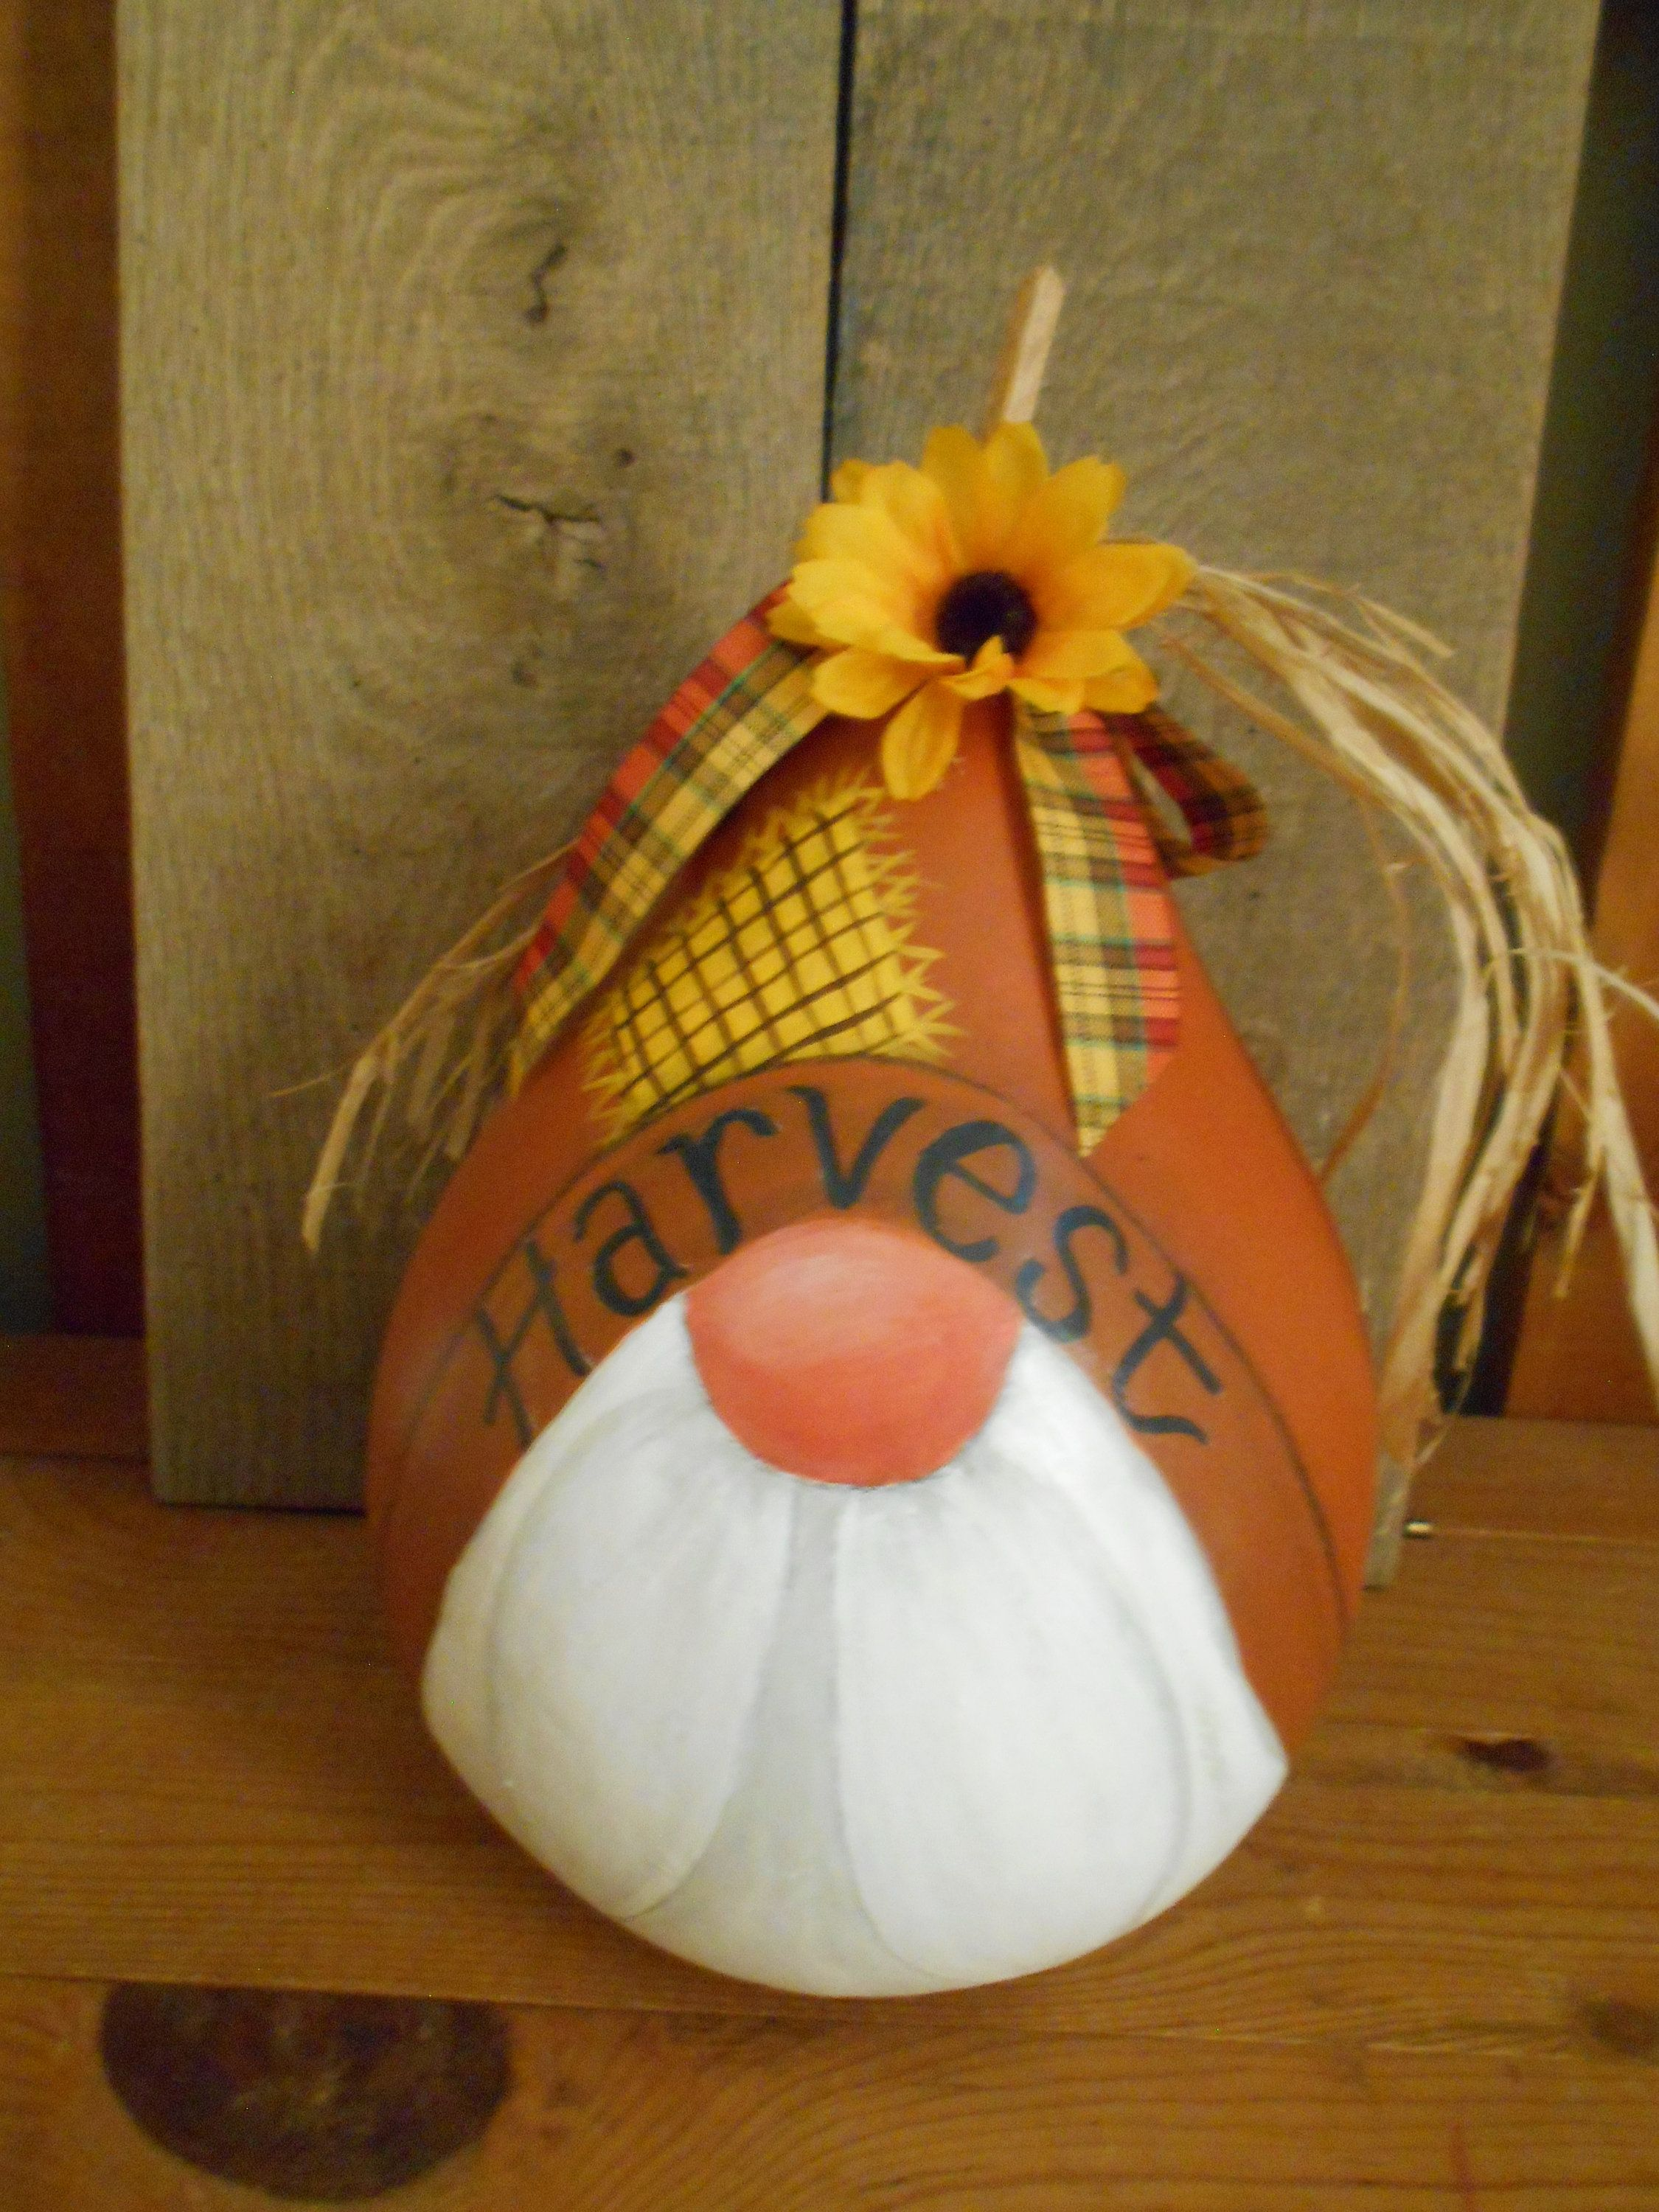 Gourd Fall Harvest Gnome Hand Painted Etsy In 2021 Hand Painted Gourds Painted Gourds Fall Gourds